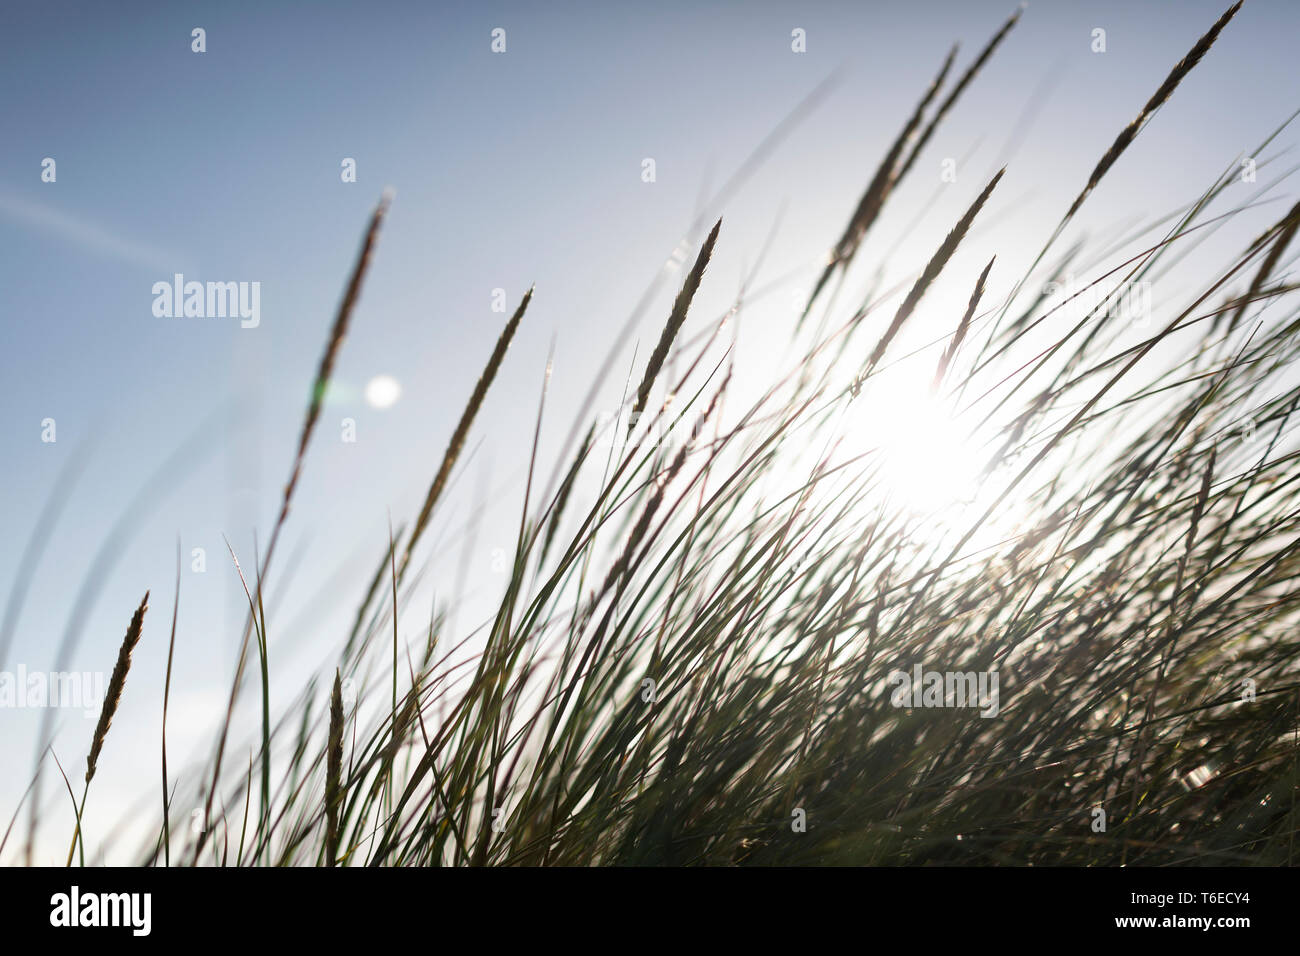 Maram grass against evening sunlight at a beach near to Boisdale, Isle of South Uist, Scotland. - Stock Image